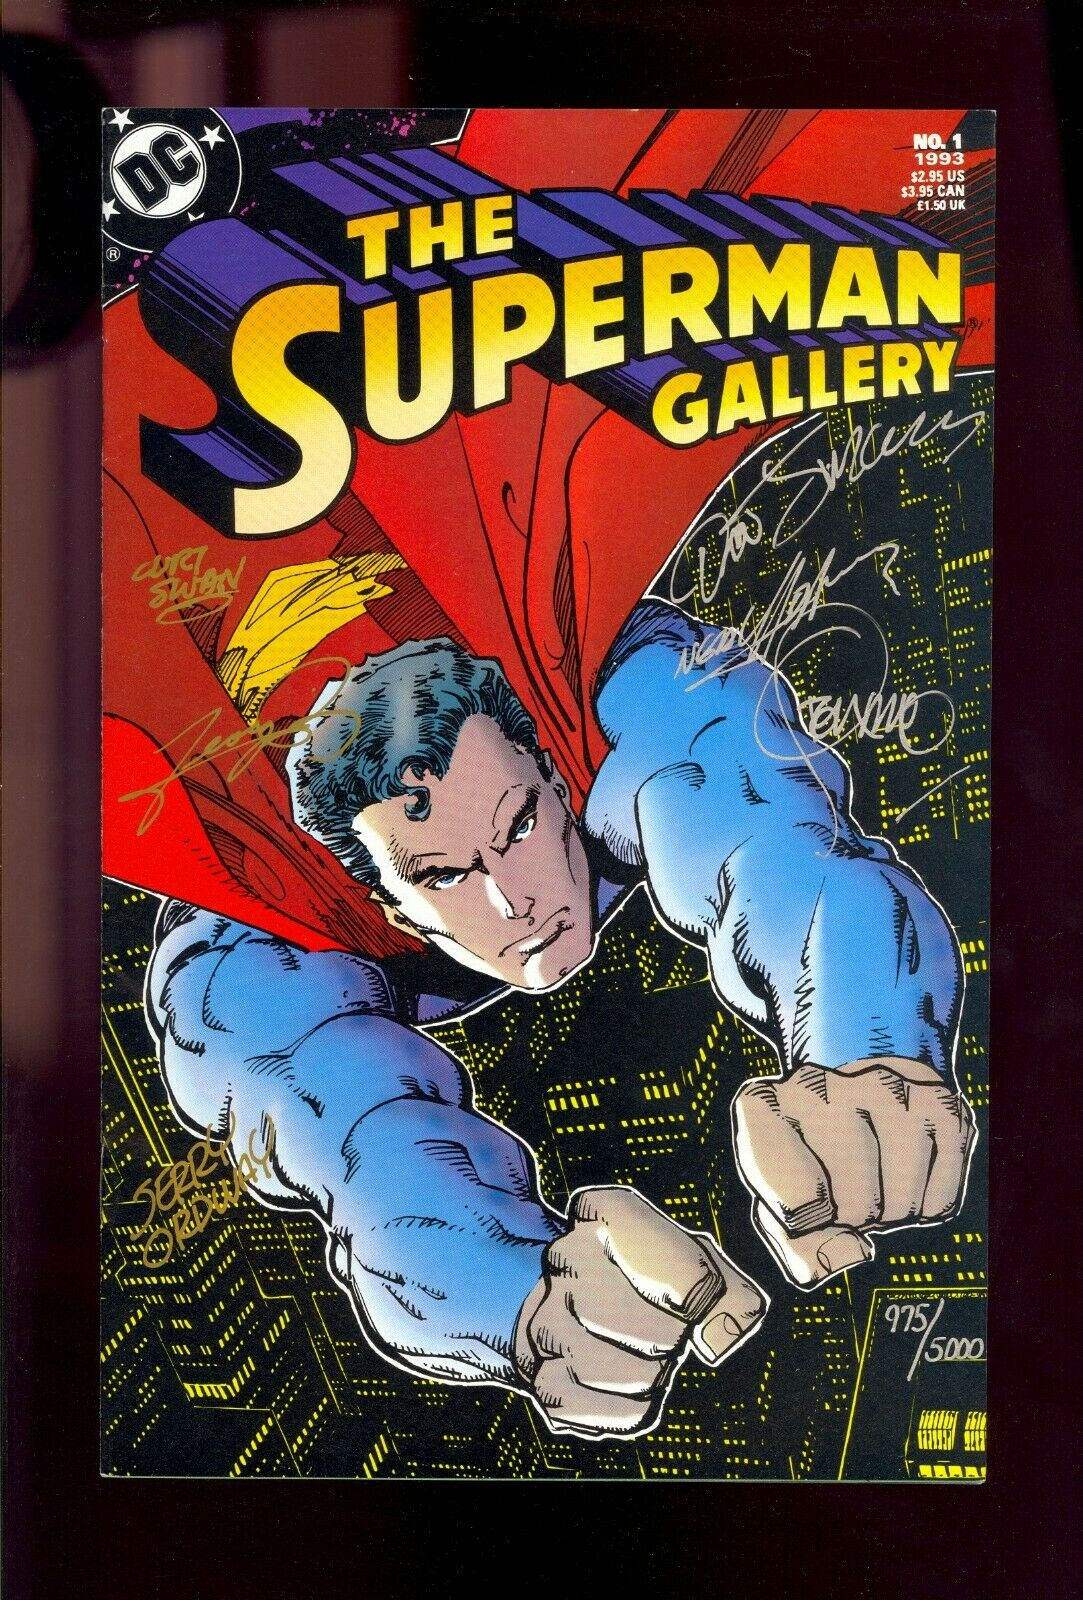 SUPERMAN GALLERY #1 SIGNED /5000 by STERANKO NEAL ADAMS SWAN PEREZ++ COMIC KINGS